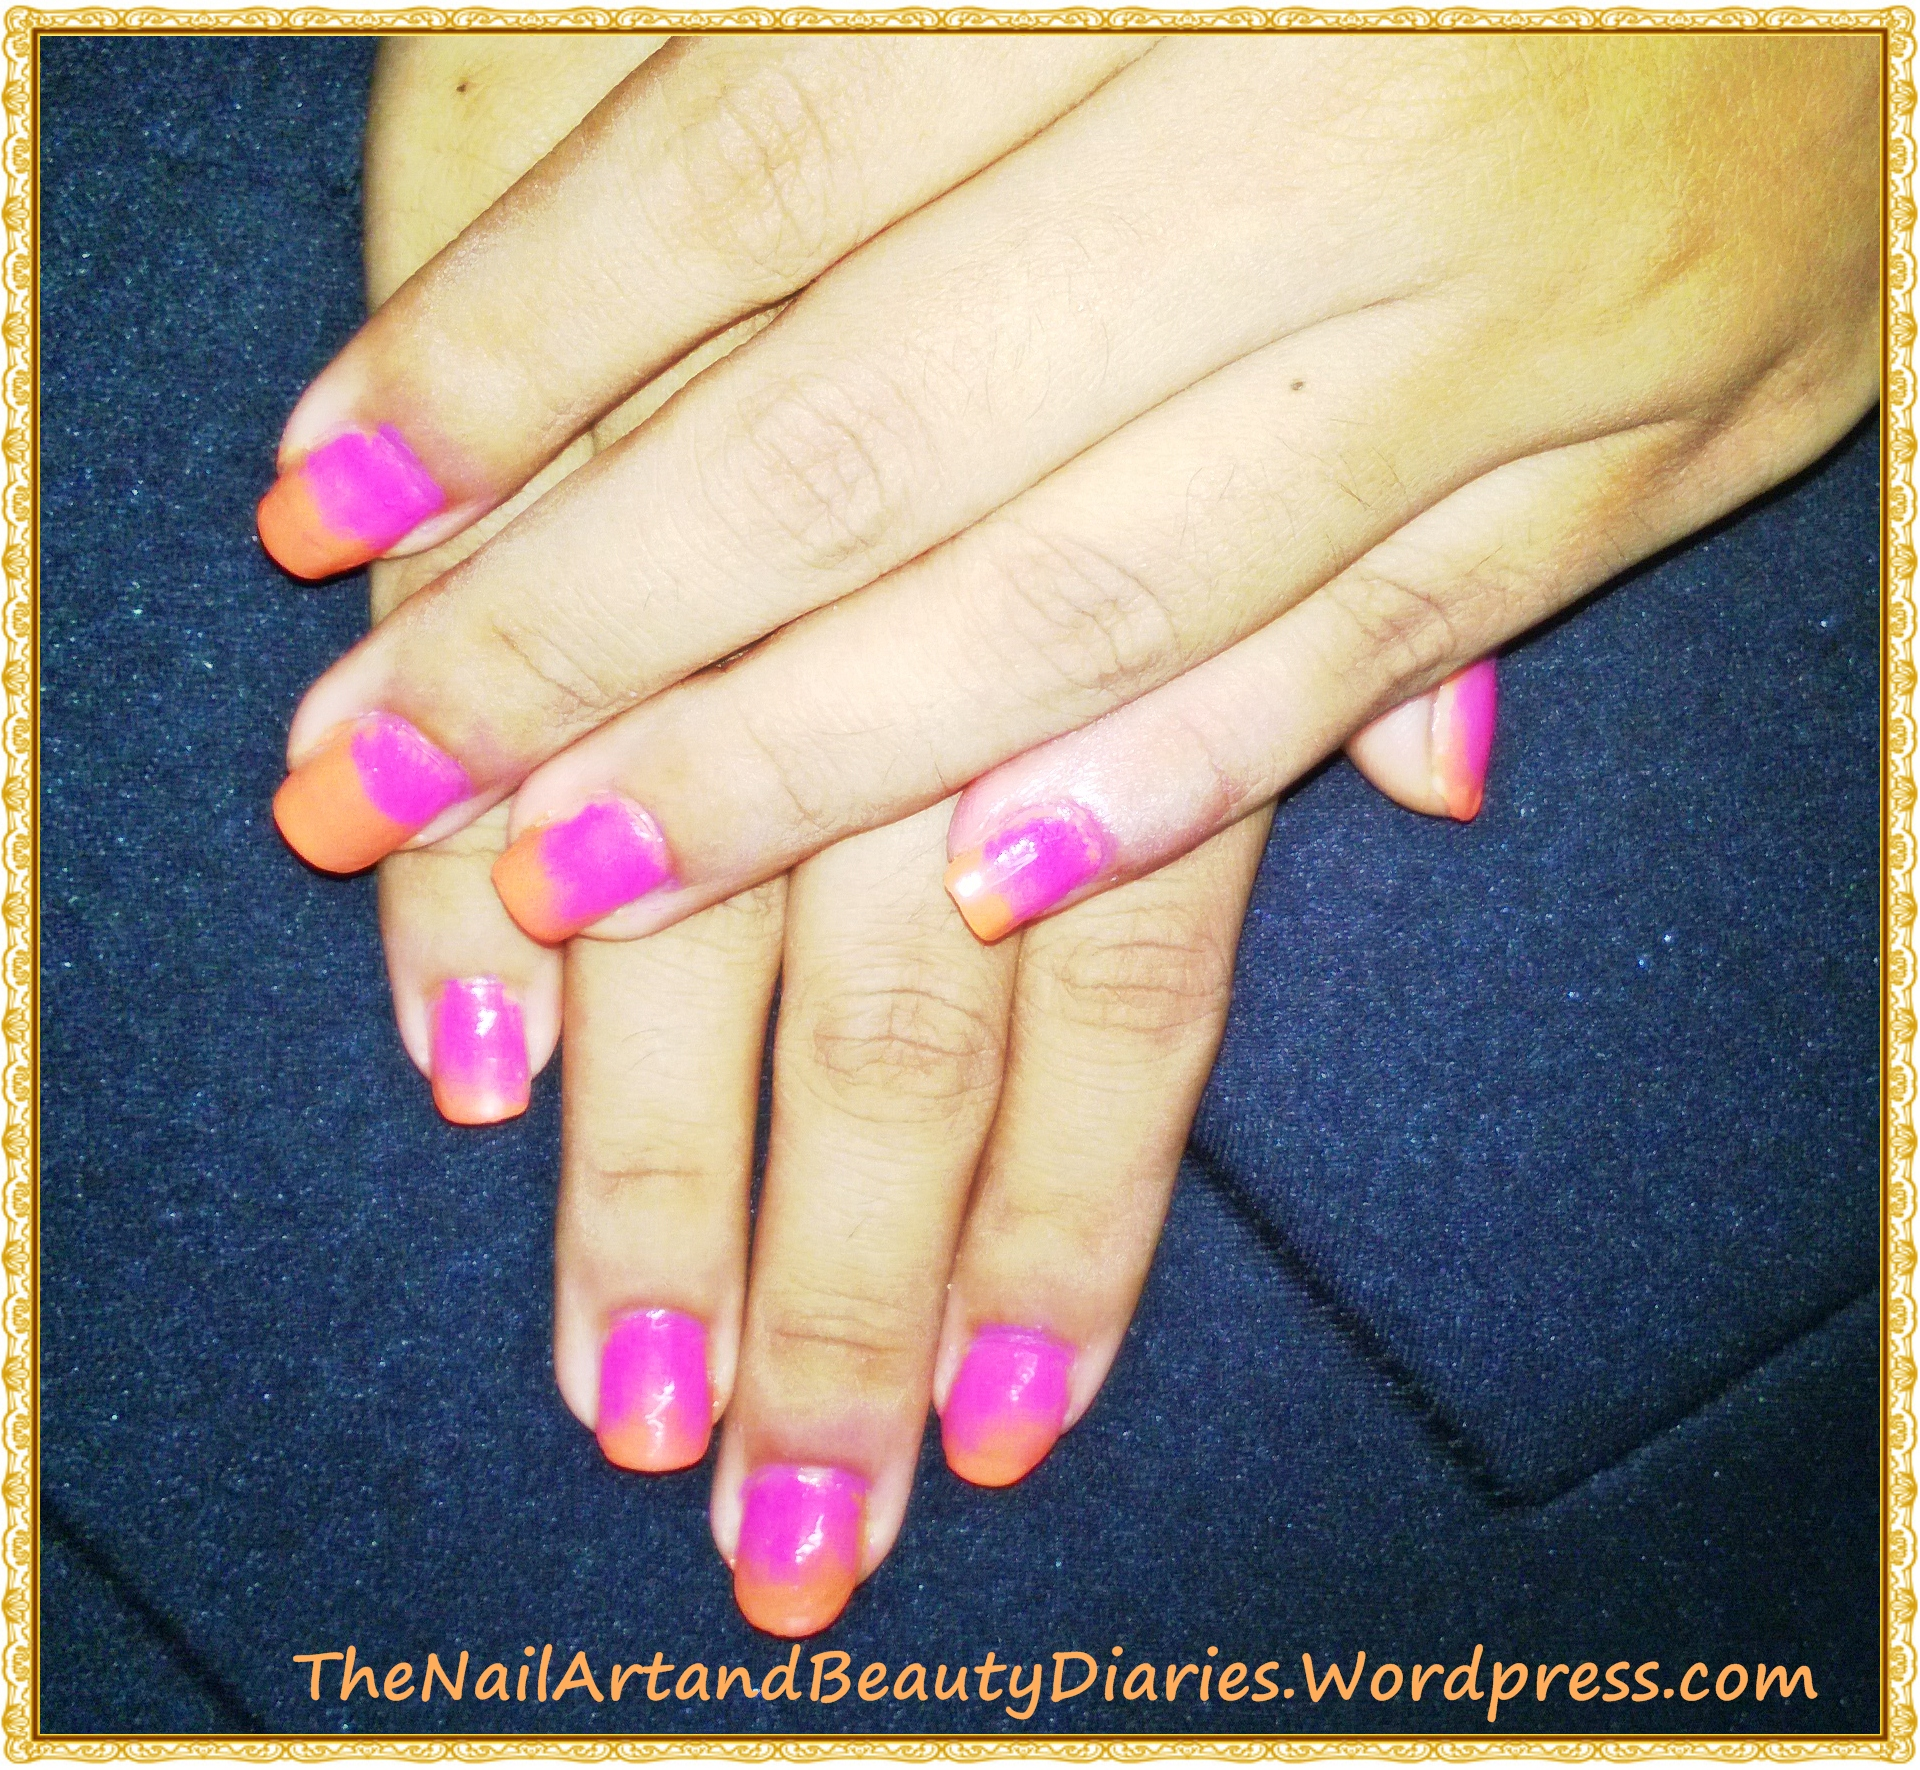 My First Attempt At Sponging Sunset In Orange And Pink Ombre The